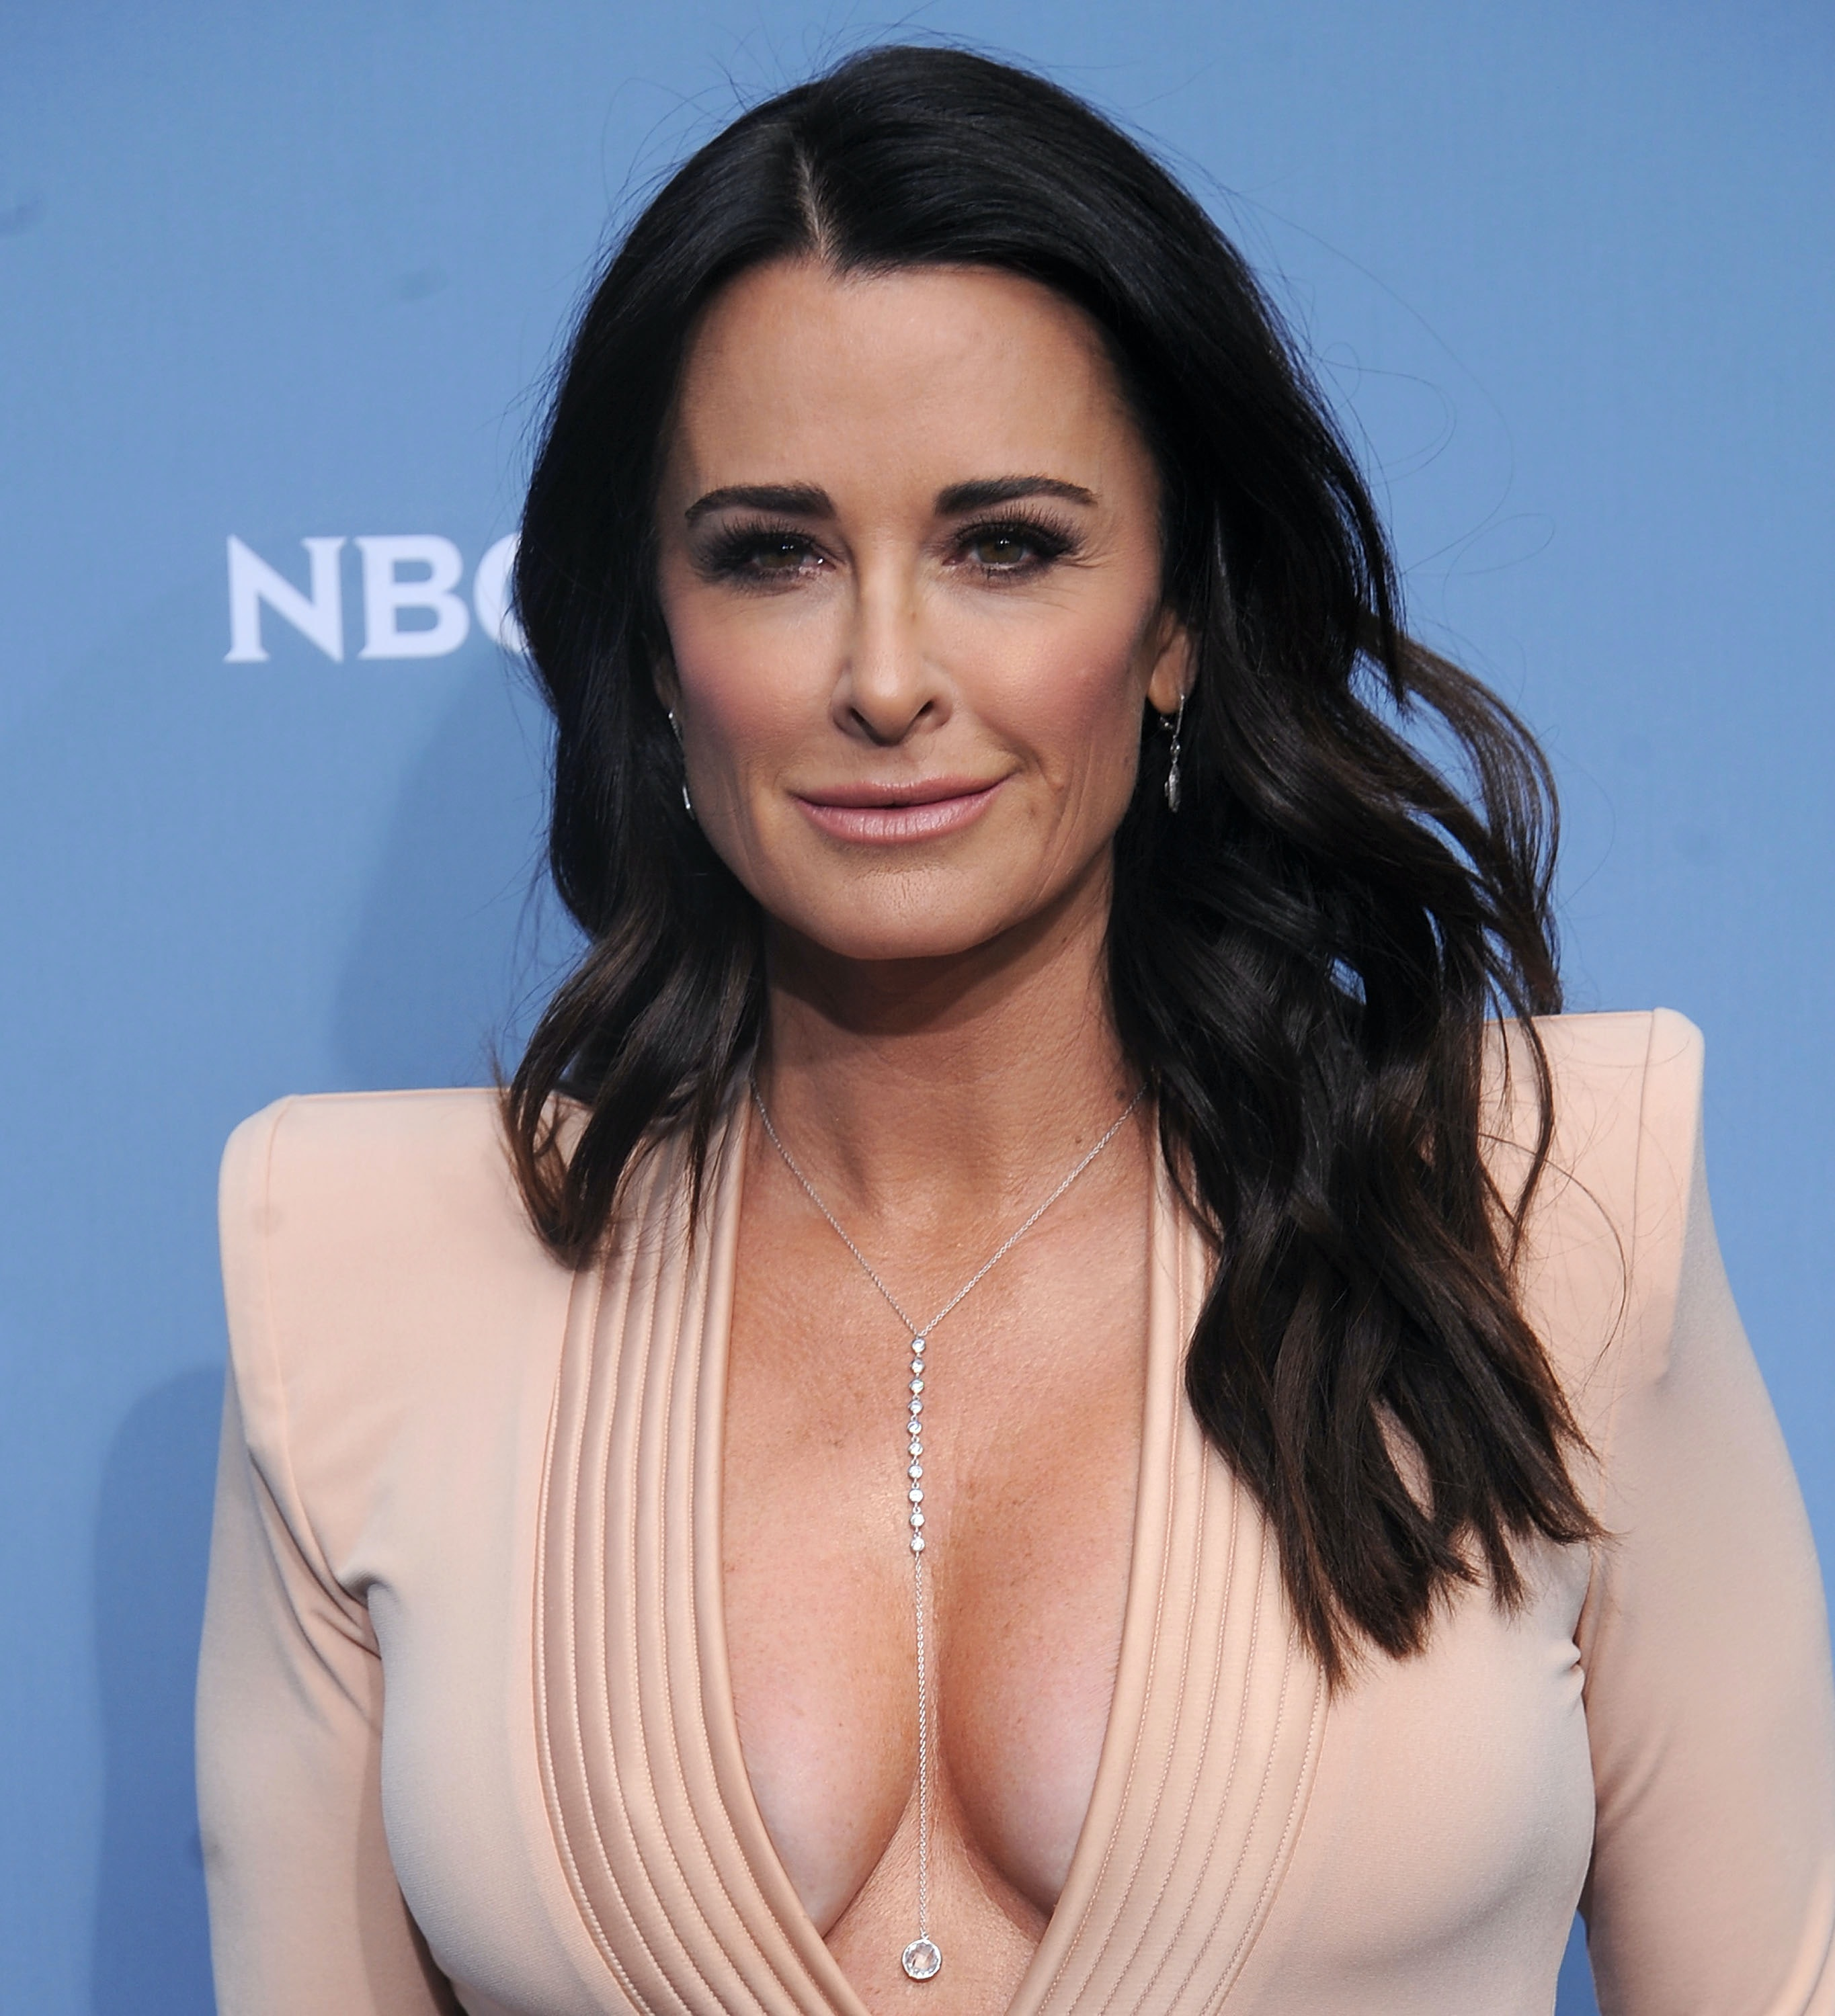 Kyle Richards' Home Was Burglarized While She Was On Vacation